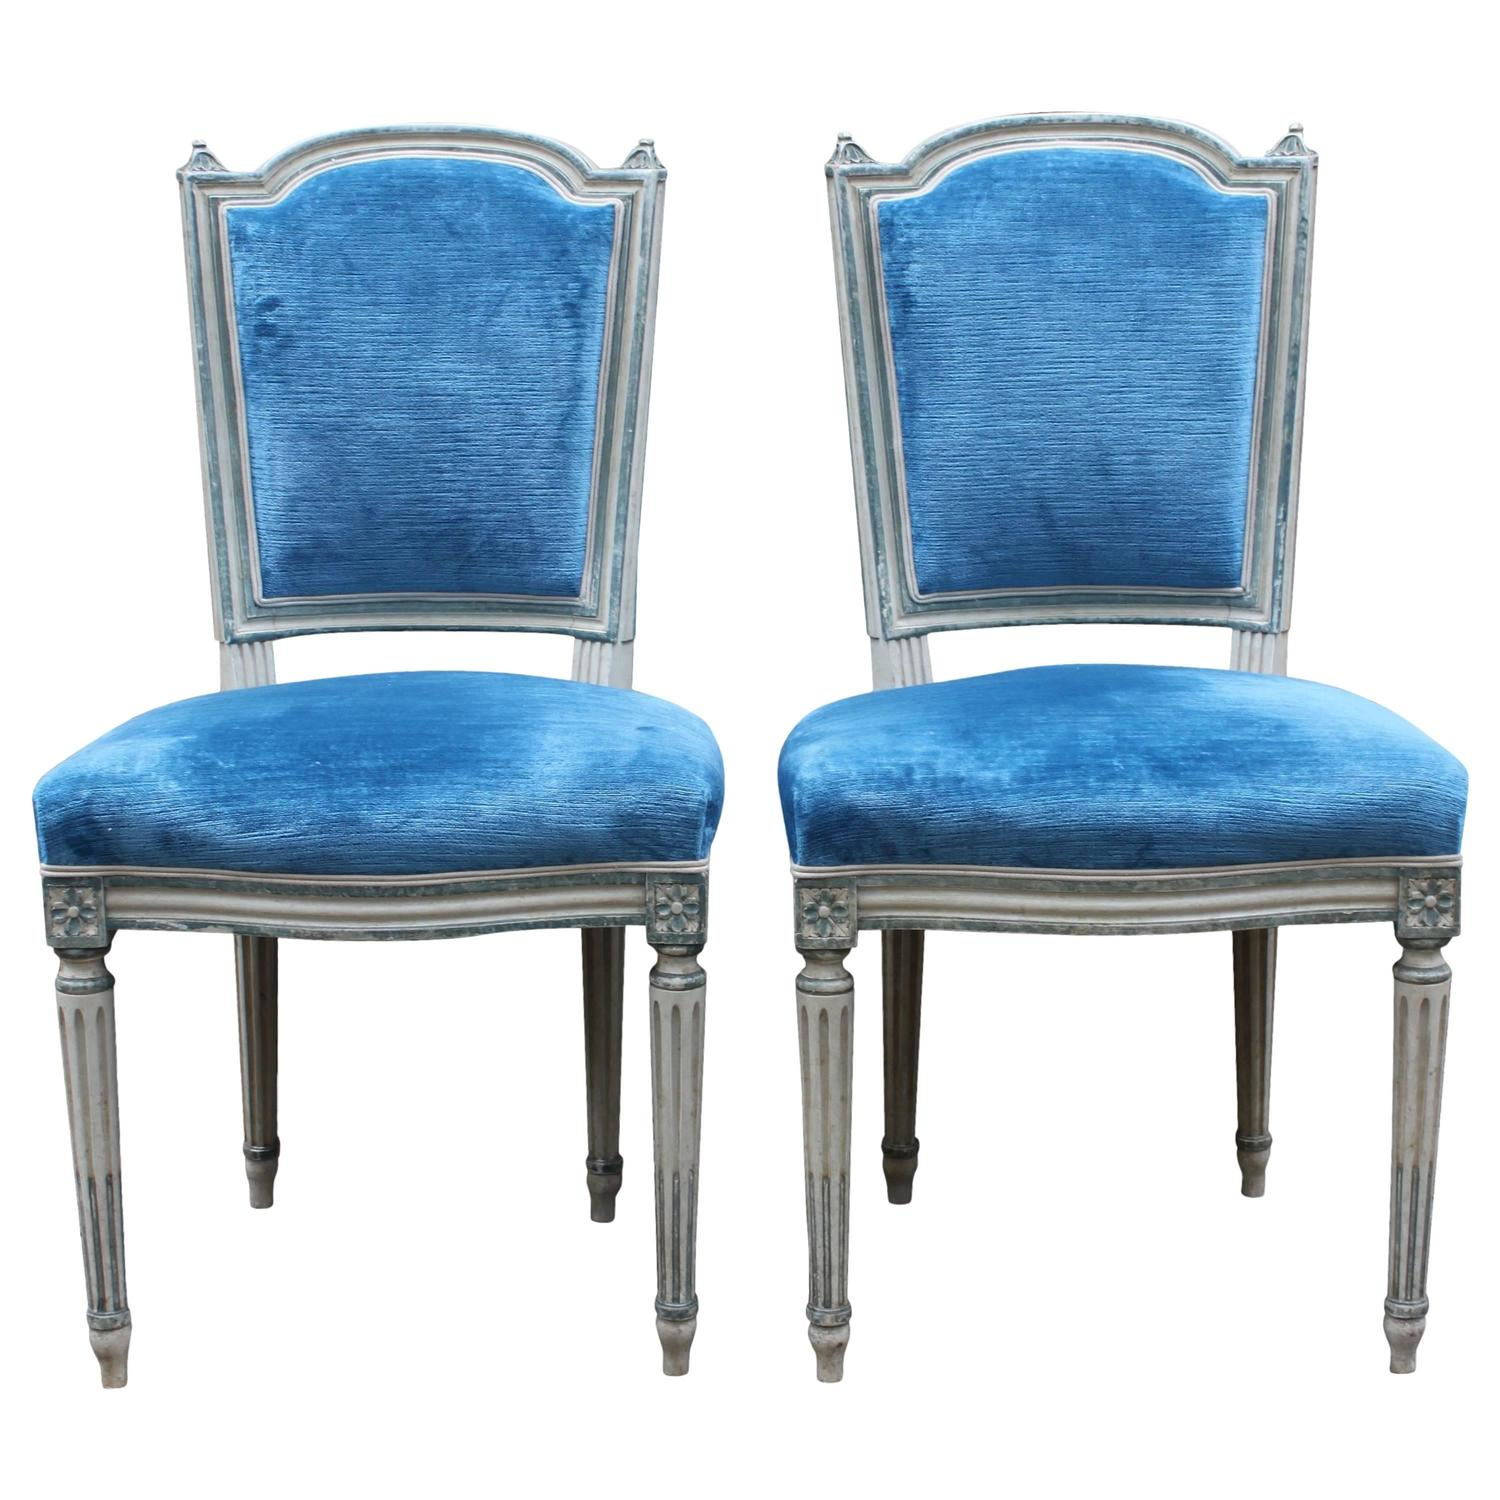 blue and white dining chairs toddler high chair activities pair of french painted louis xvi style